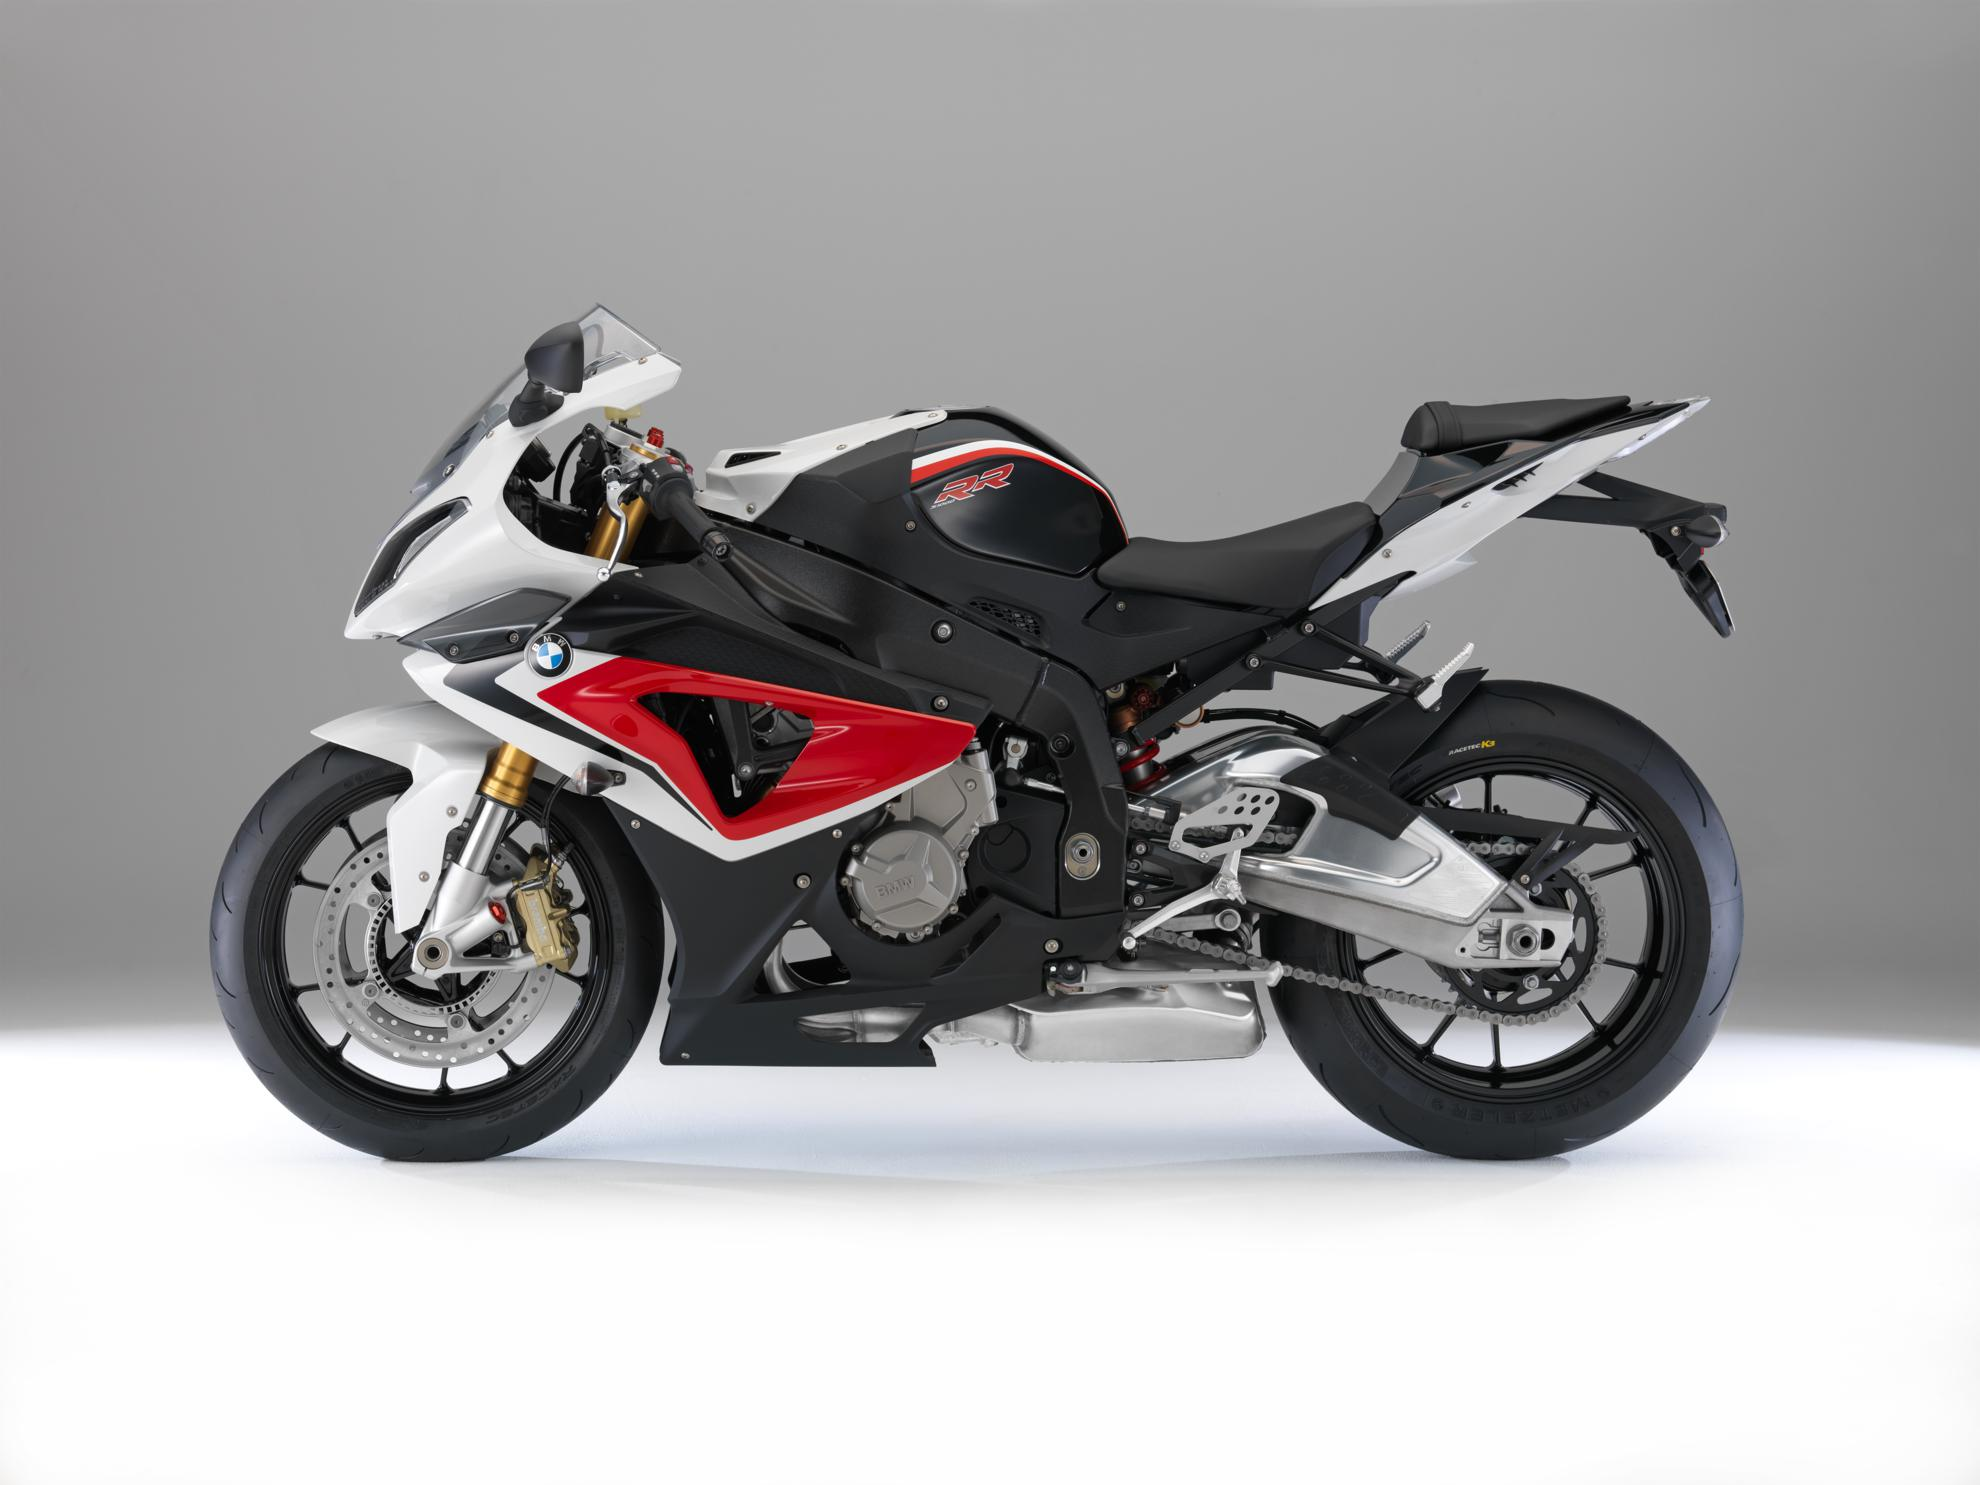 BMW S1000RR Motorcycle